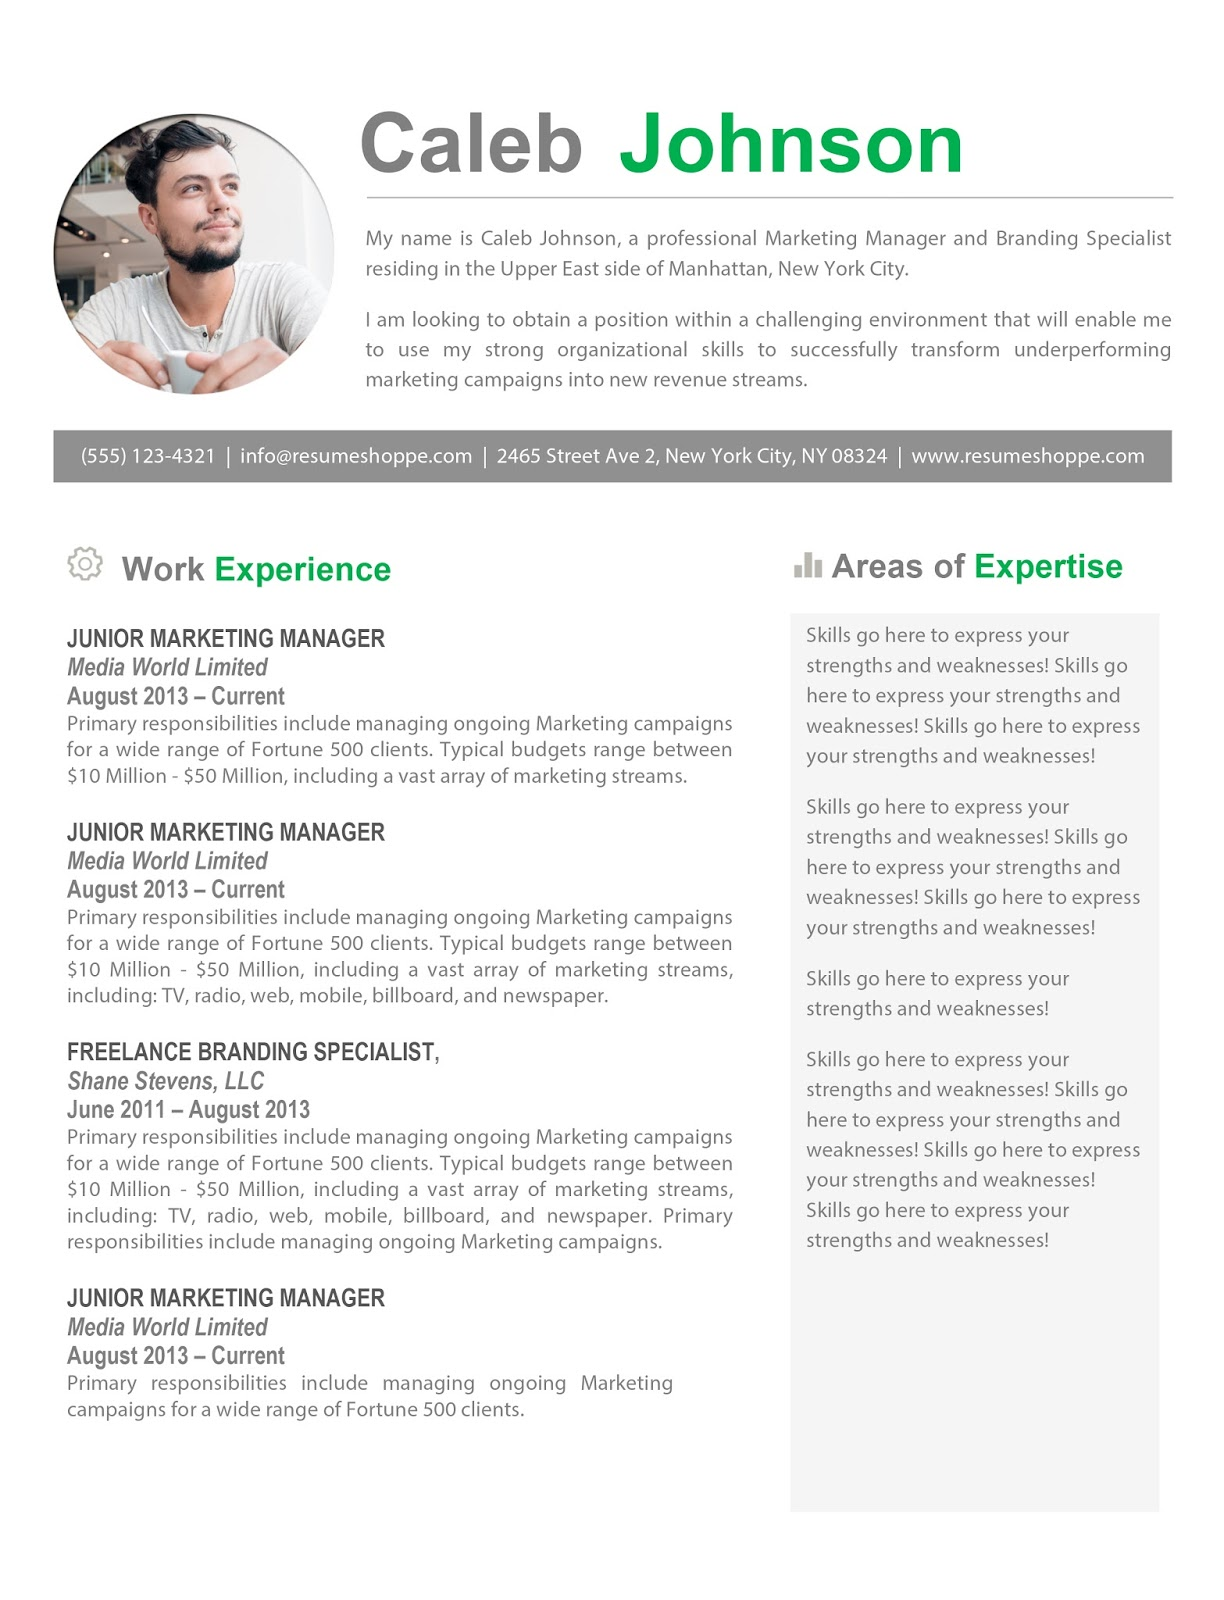 Adobe Resume Template Excel A Wide Array Of Resume Templates To Choose From  Dadakan Sample Resume For Truck Driver Excel with Fraternity On Resume A Wide Array Of Resume Templates To Choose From Walk Me Through Your Resume Pdf